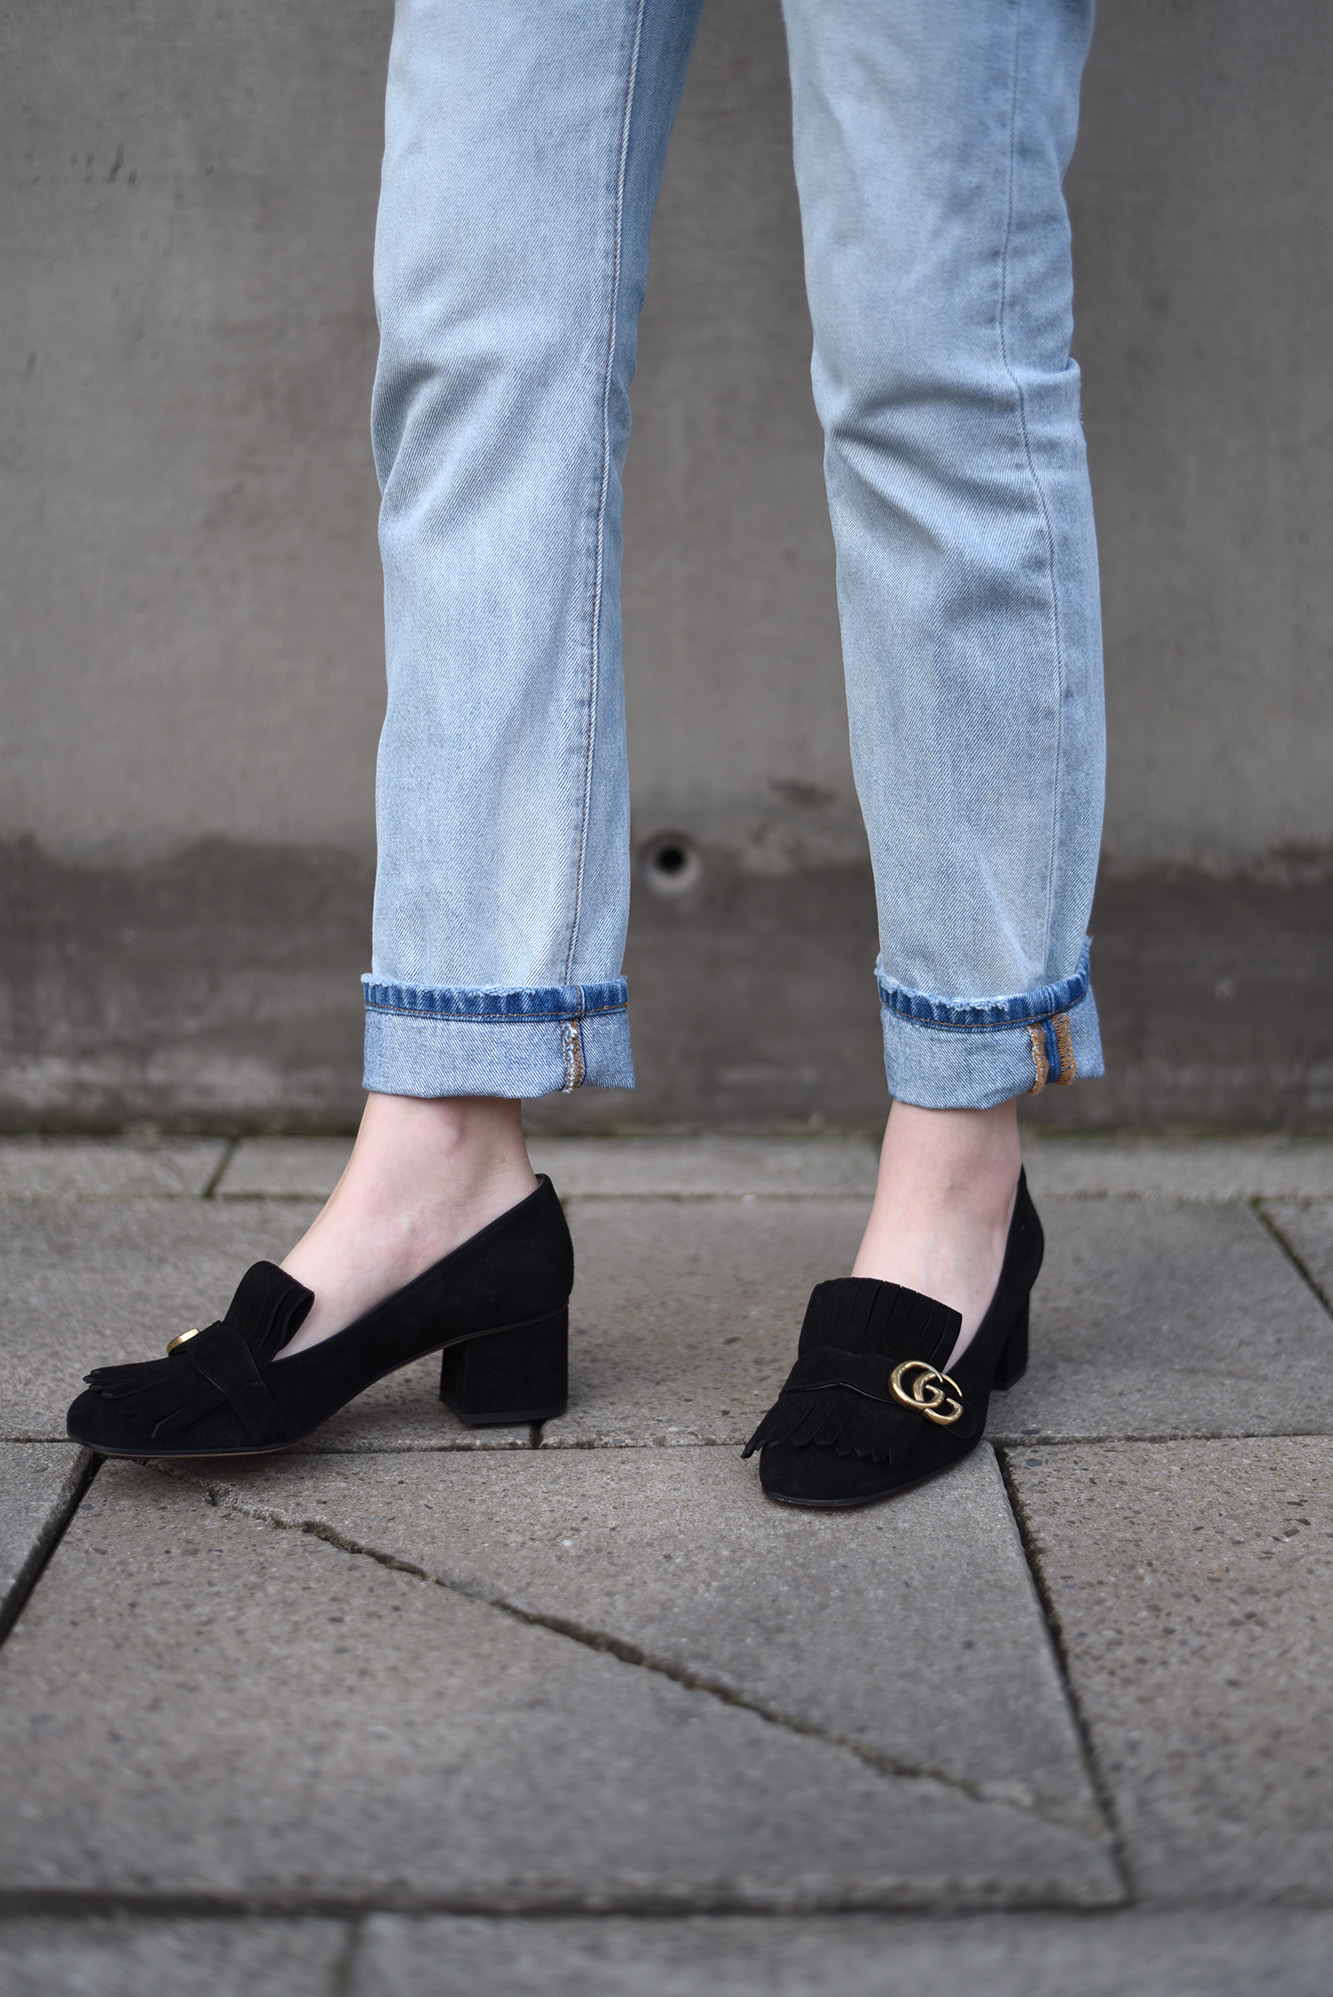 Gucci Suede Mid Heel Pump — SHOT FROM